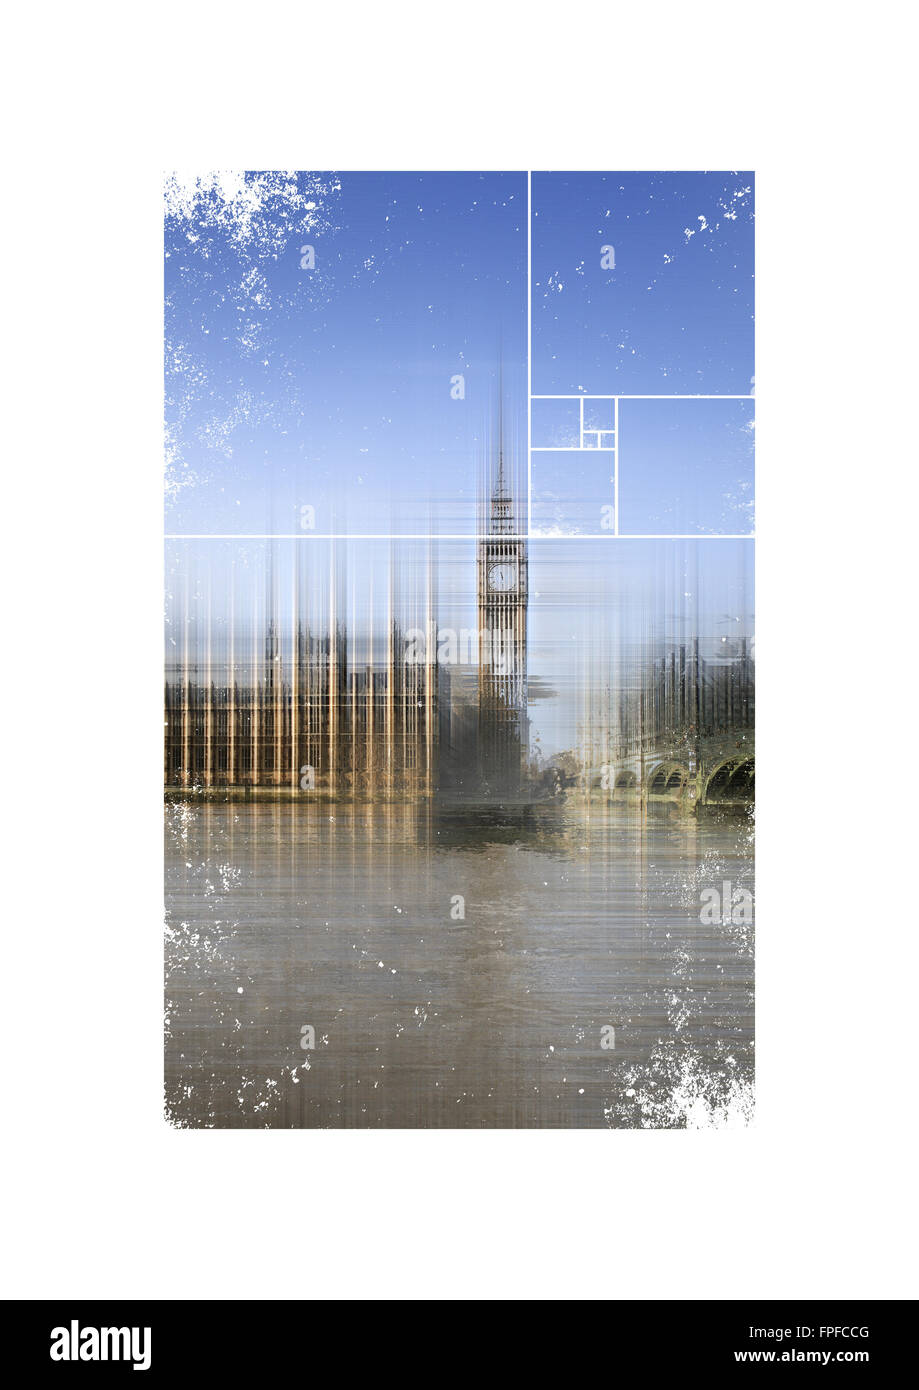 Blurred View of Big Ben Clock Tower and Palace of Westminster Parliament Building from Thames River in London, England - Stock Image